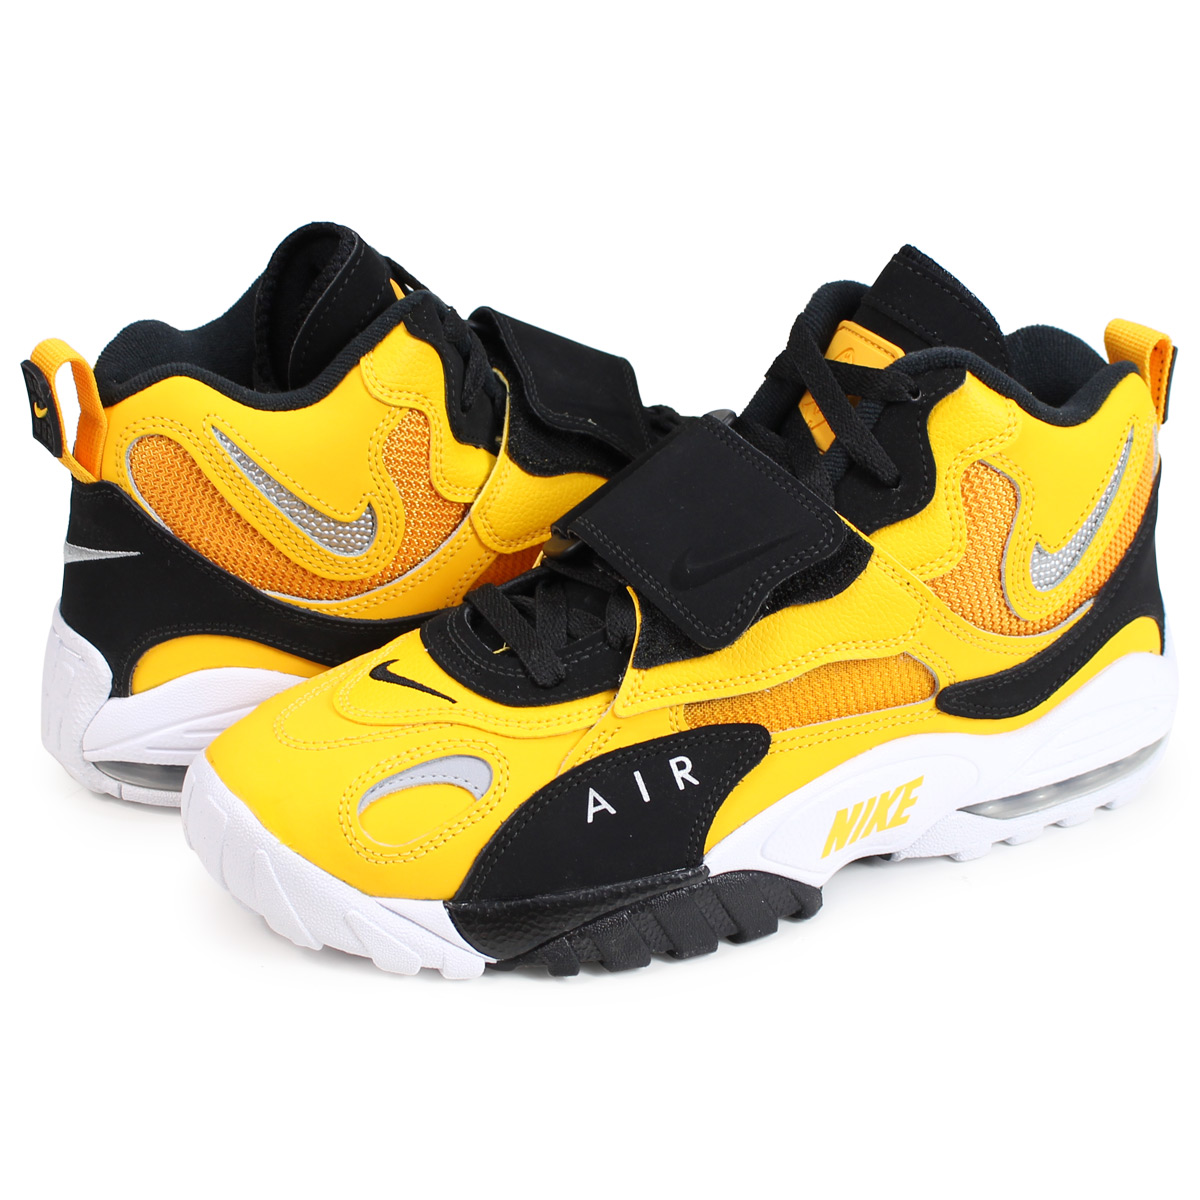 4959c41654 Nike NIKE Air Max sneakers men AIR MAX SPEED TURF gold BV1165-700 [the ...